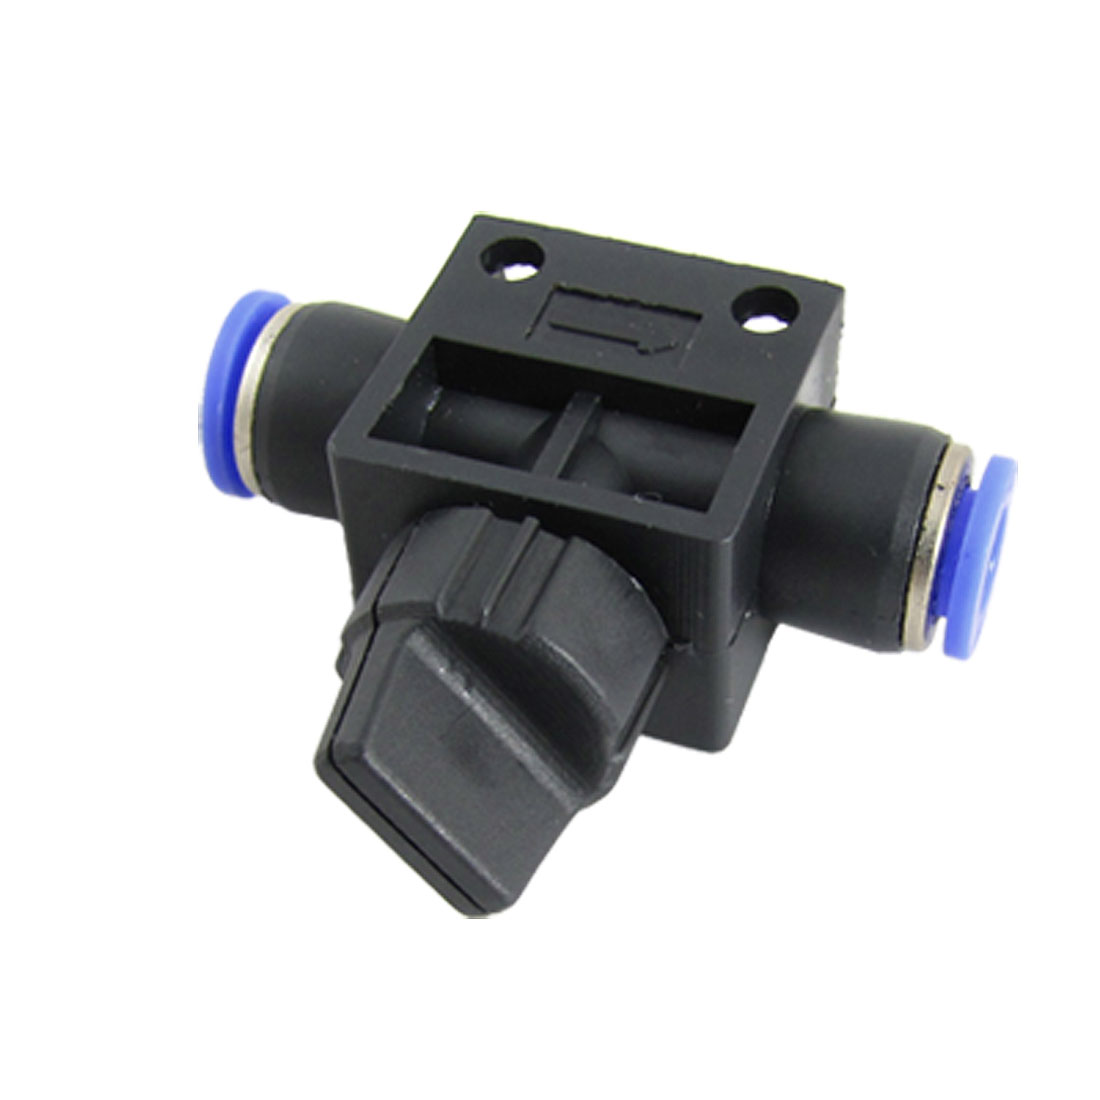 6 x 6mm One Touch Fitting Pneumatic Connector Hand Valve